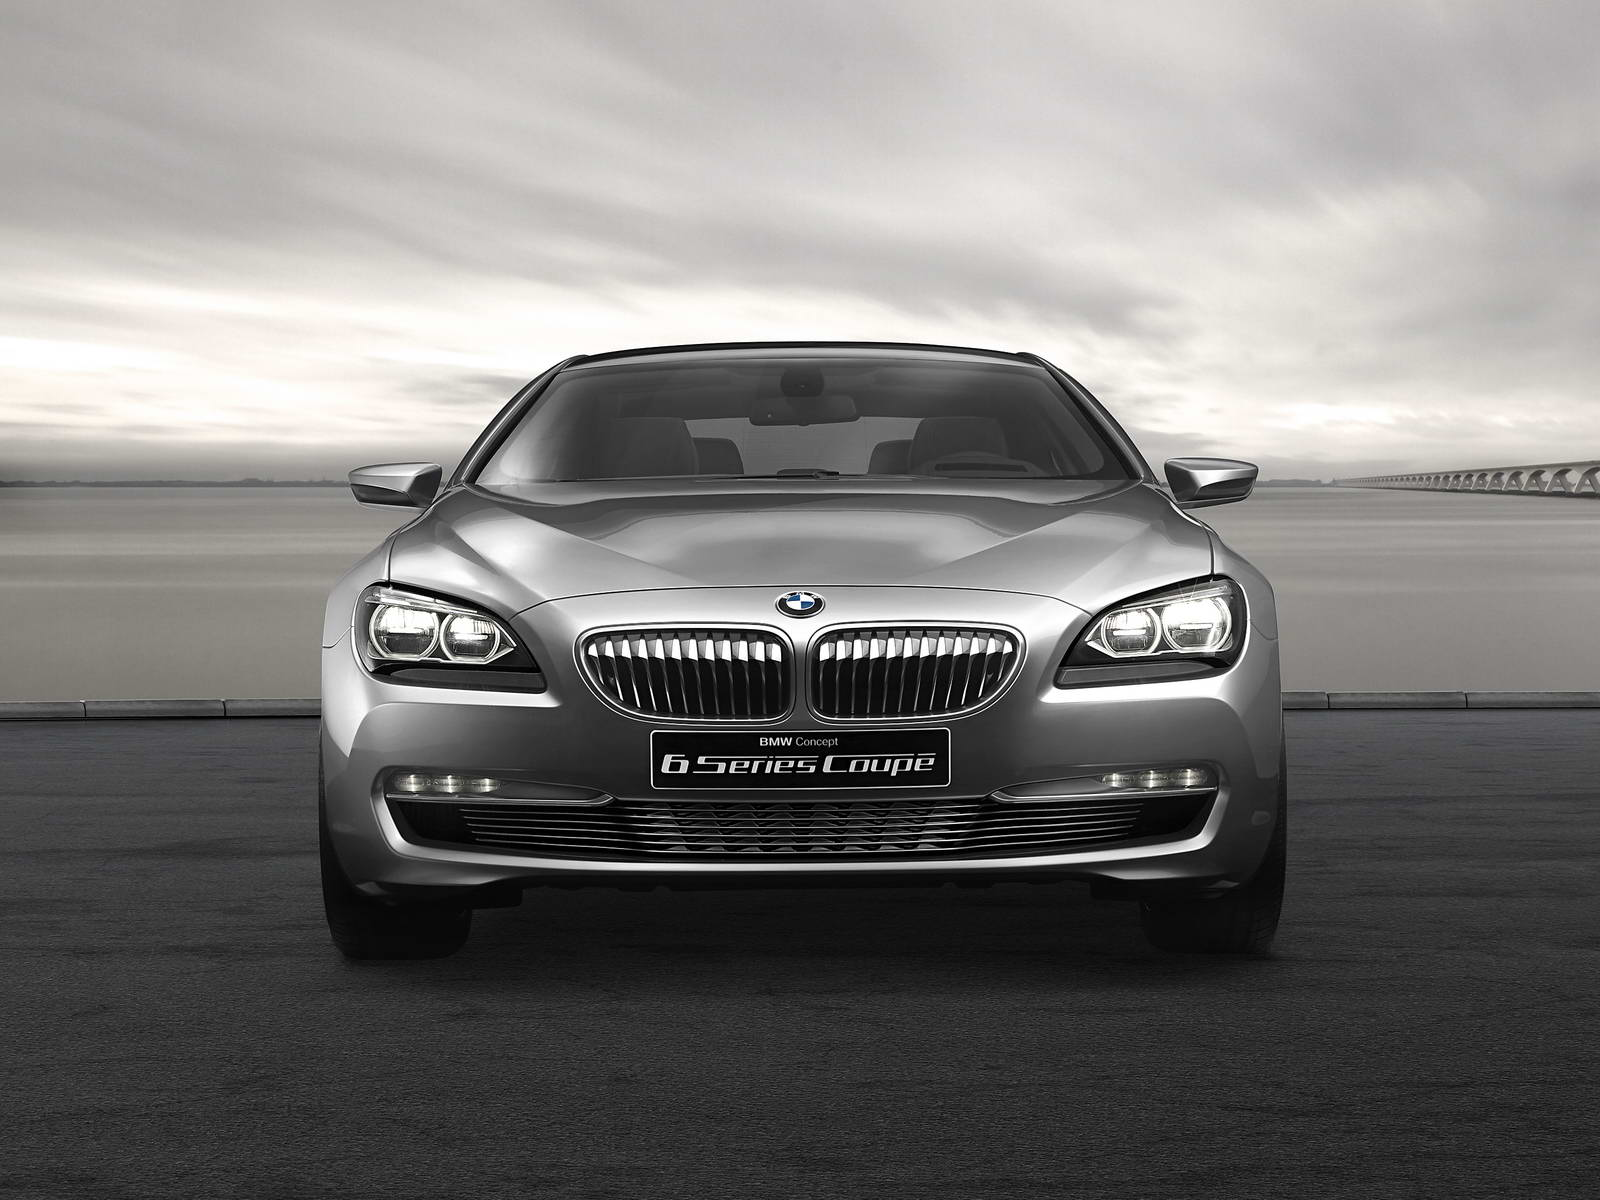 bmw_concept_6_series_coupe_03